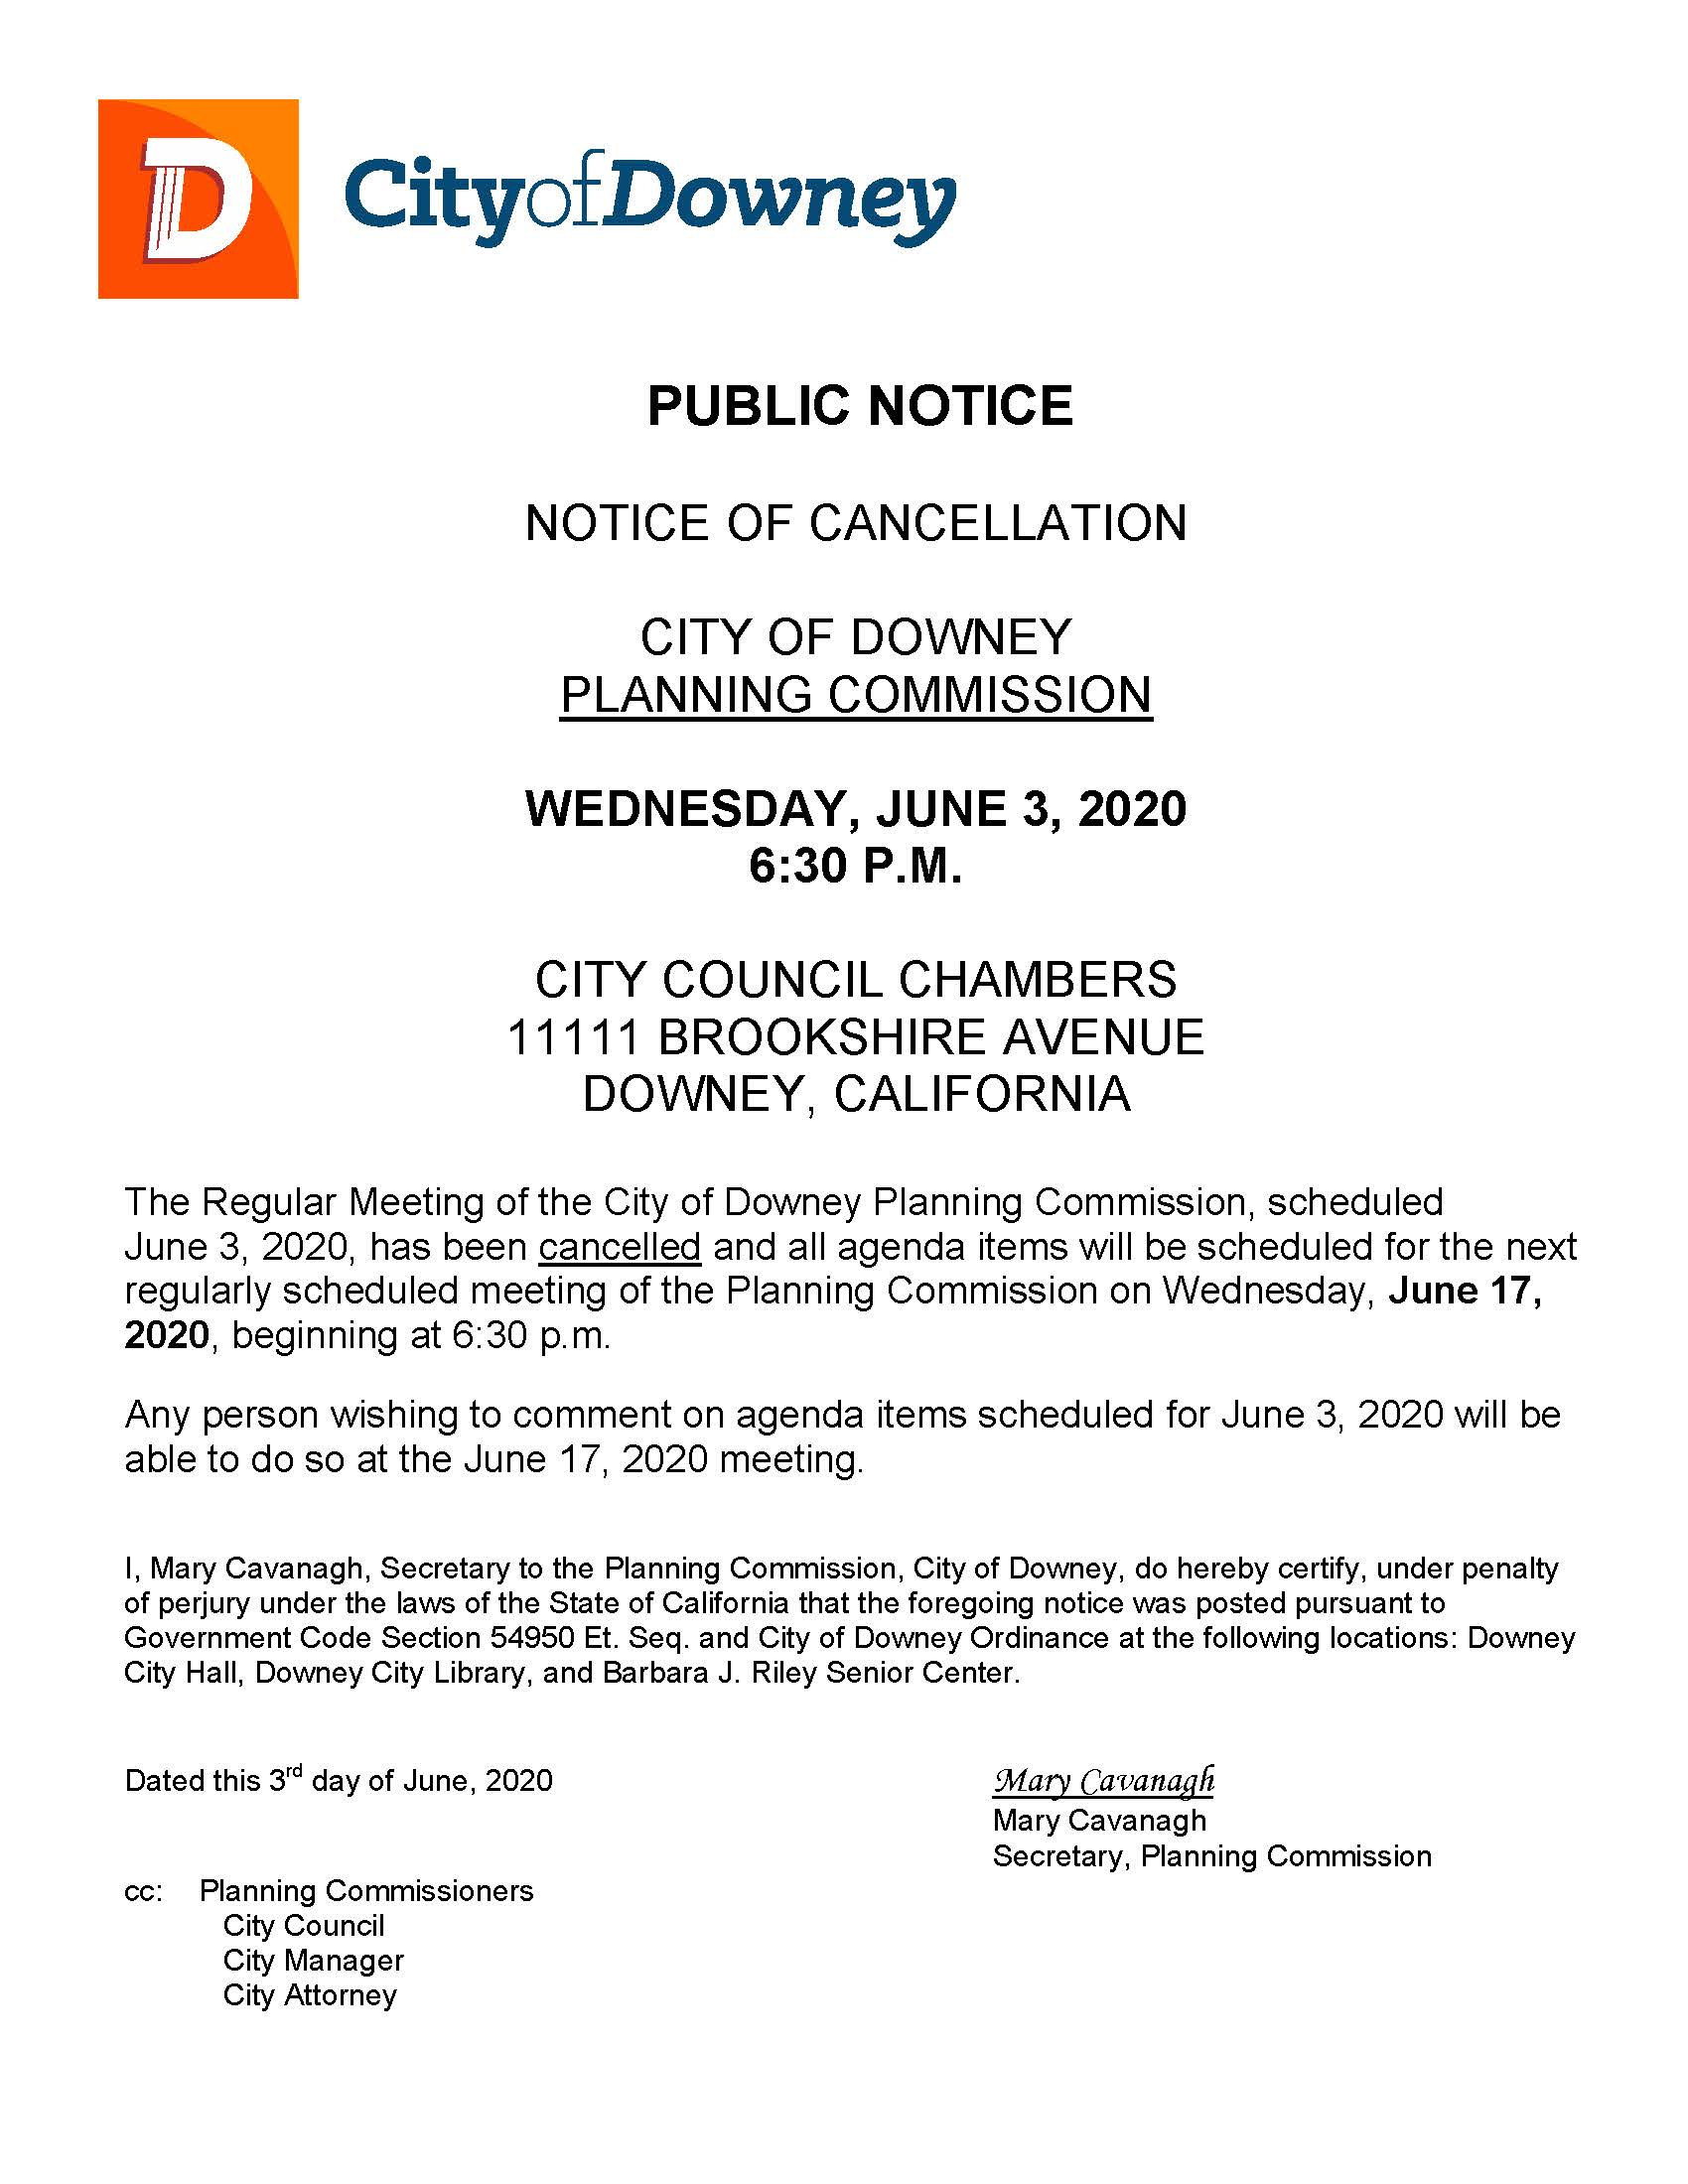 Notice of PC CX. June 3 2020